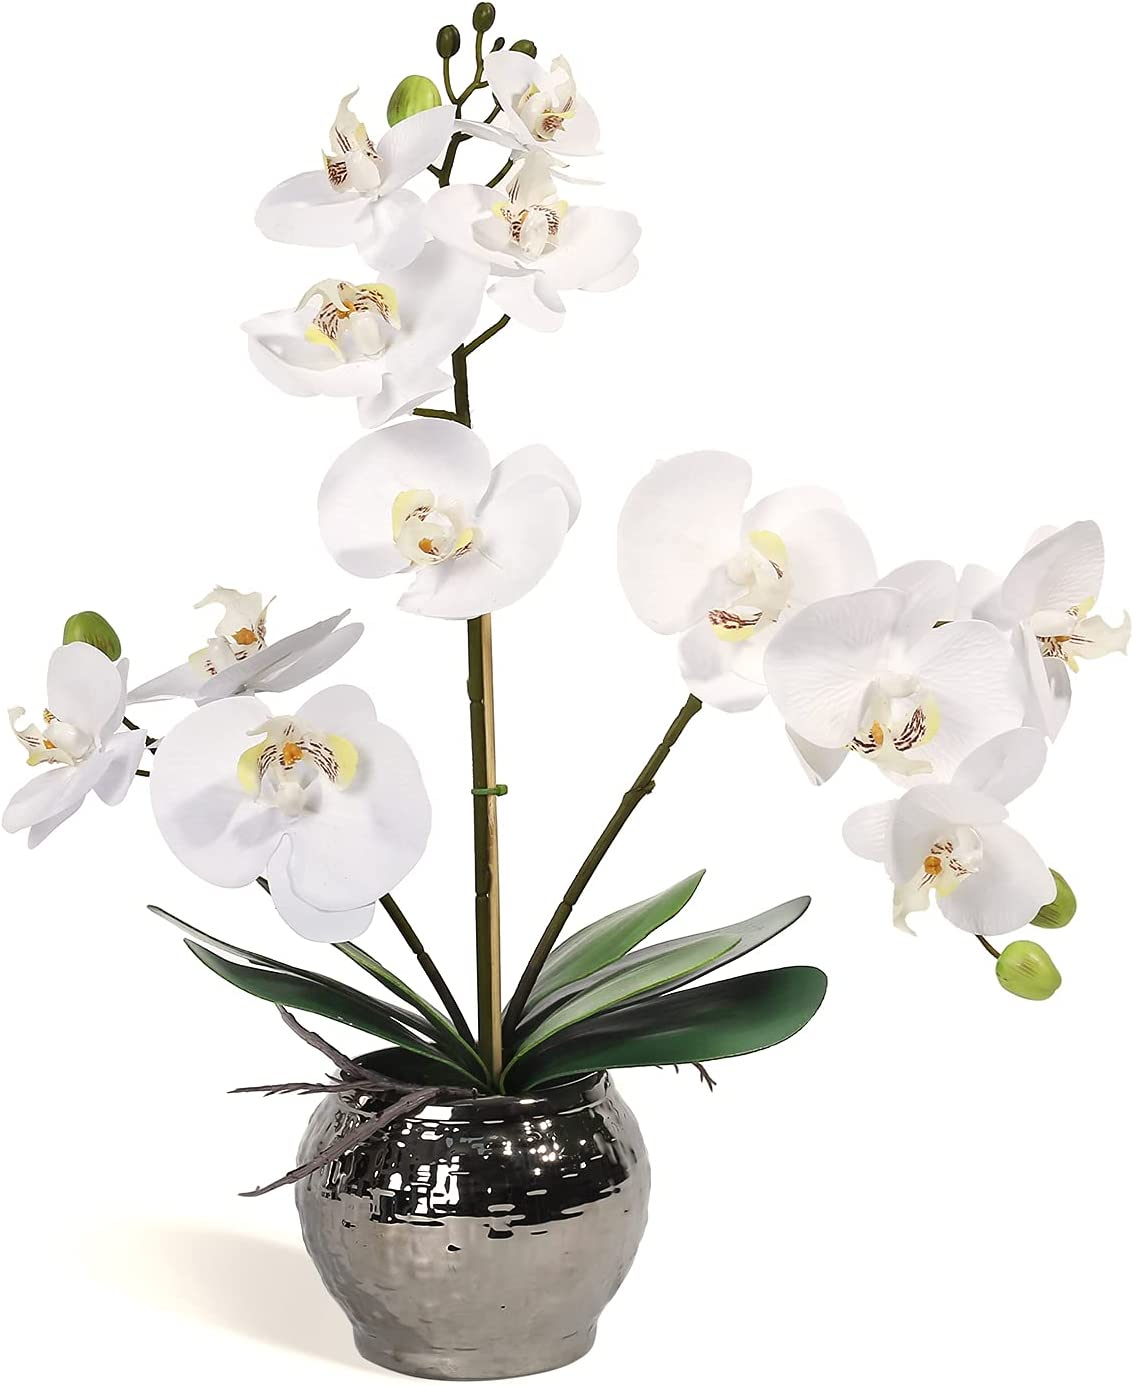 White Orchid Fake Orchids Orchid Flower Faux Orchid Plant in Pot Fake Flower Decor for Kitchen Decoration Home Decor Party Office Table Centerpieces Flower Arrangements Hotel Indoor